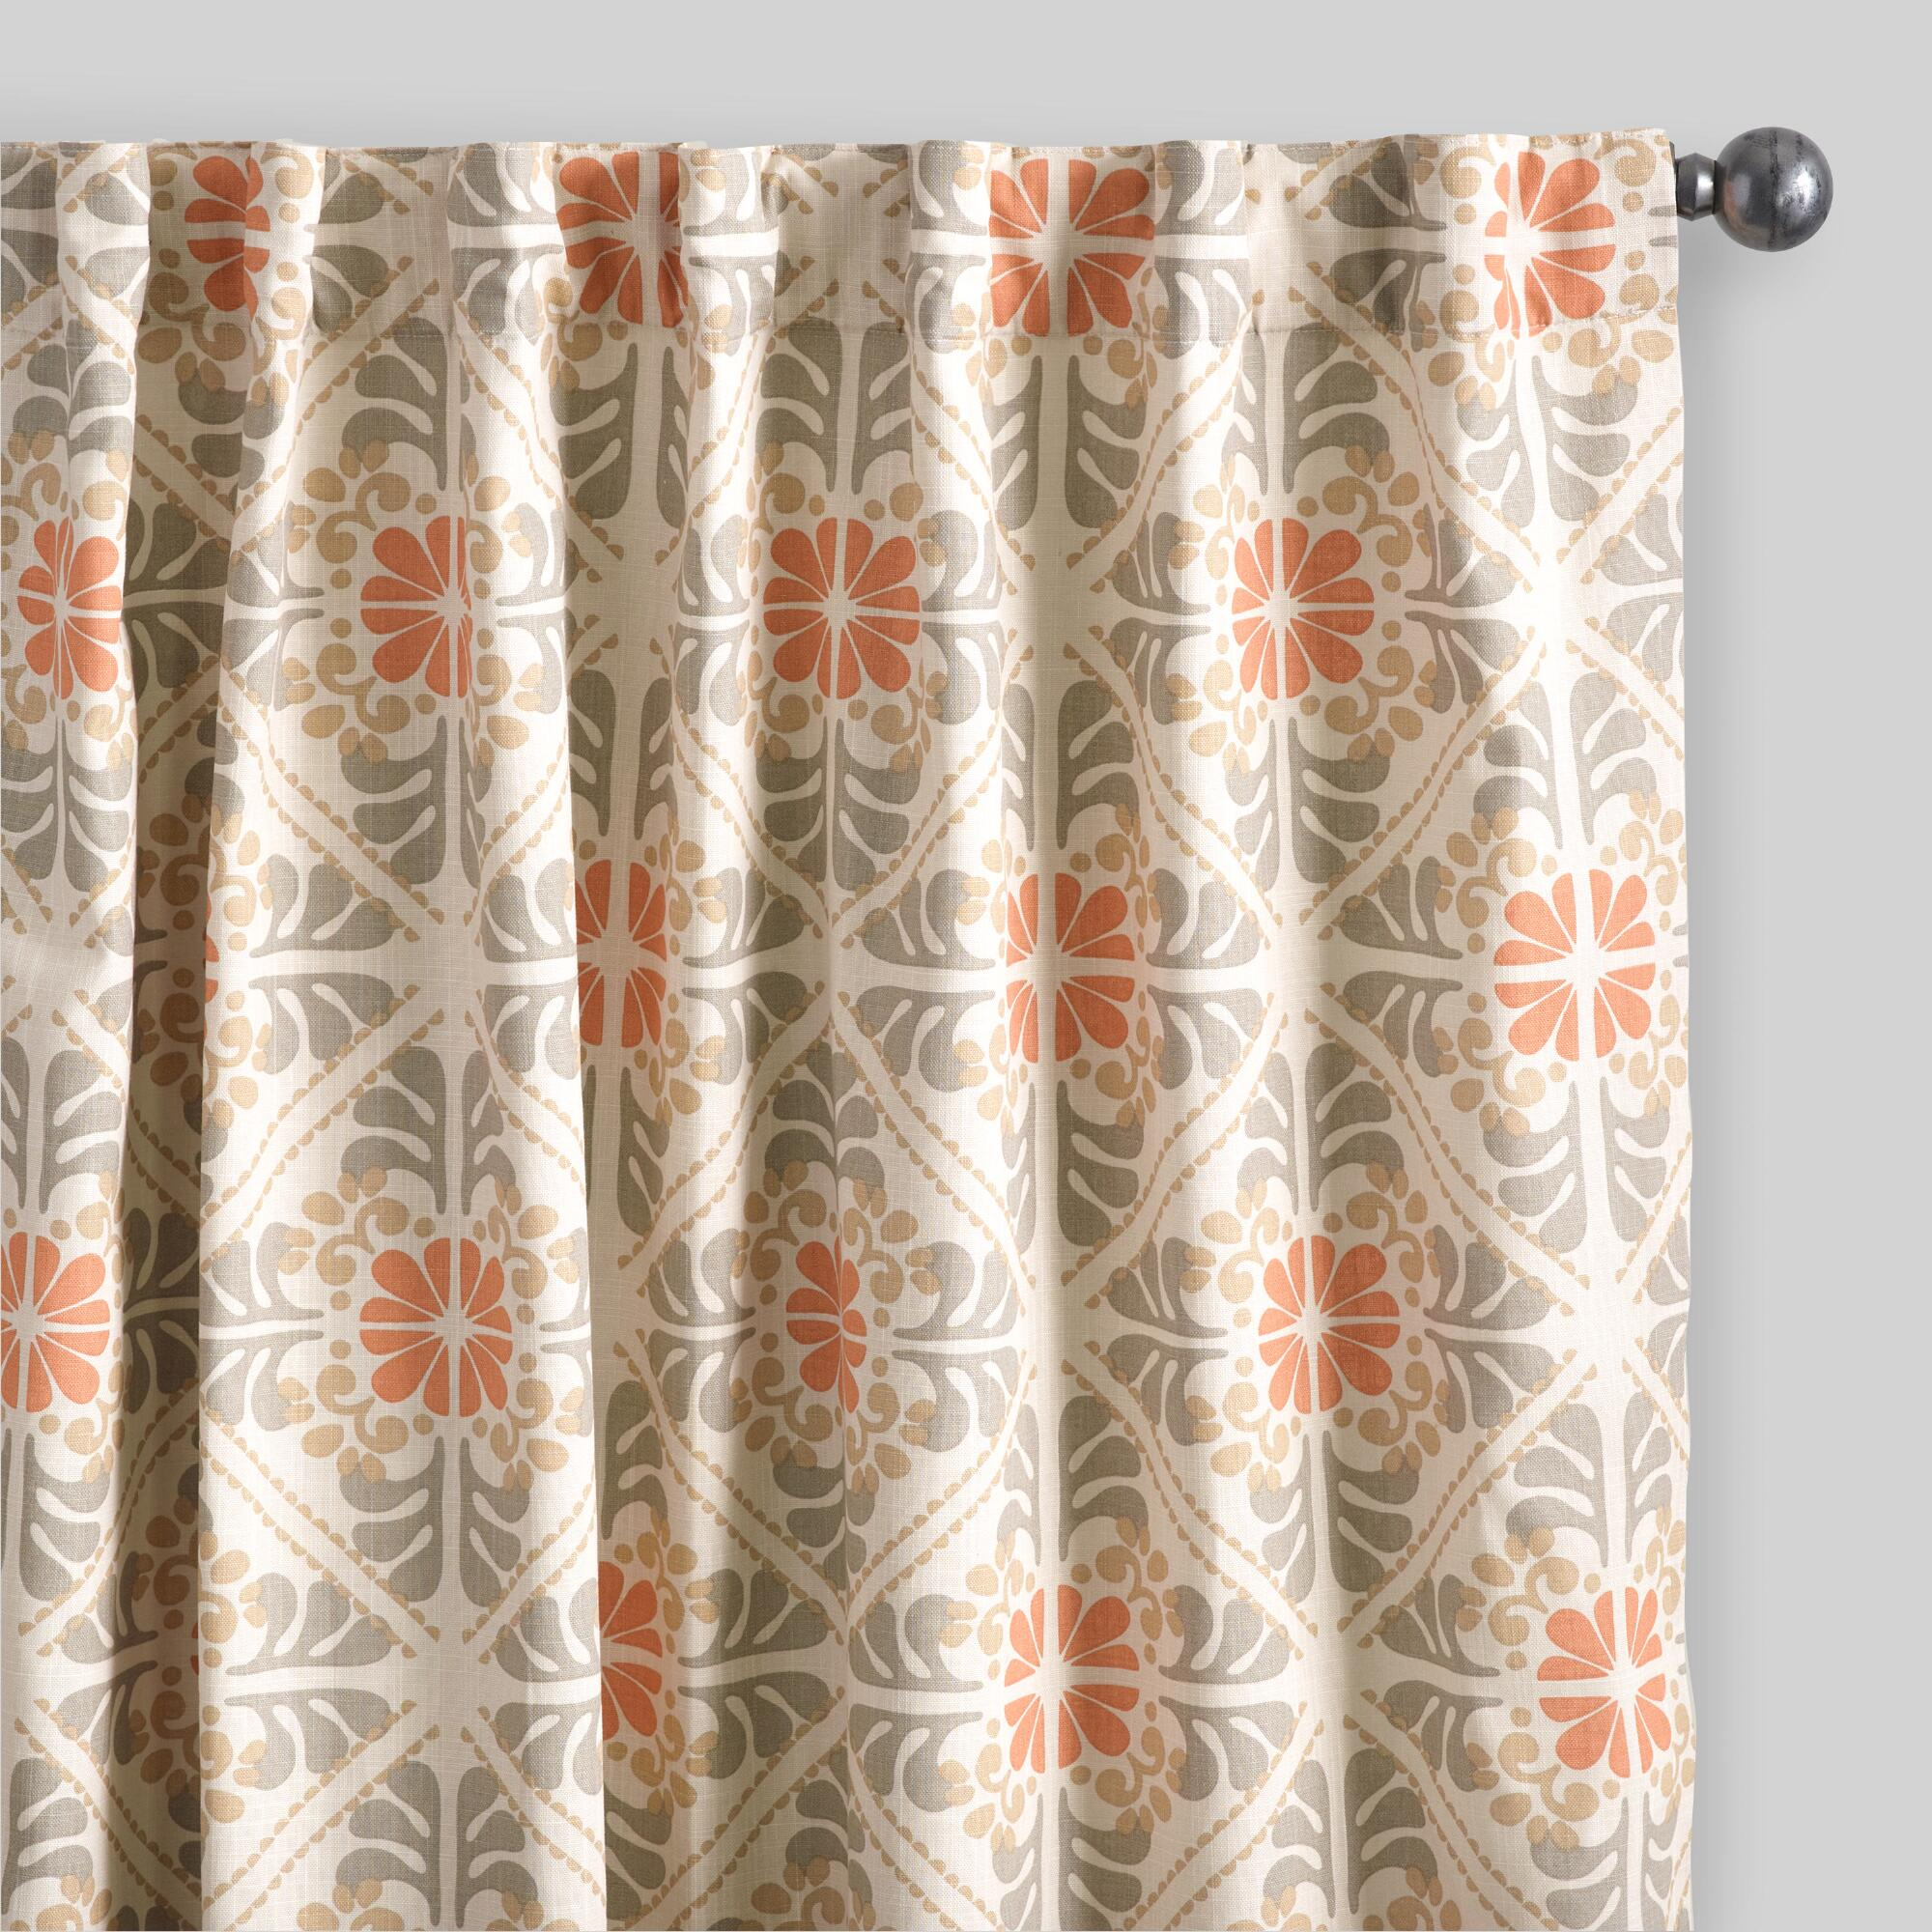 How to make tab top curtains - How To Make Tab Top Curtains 26